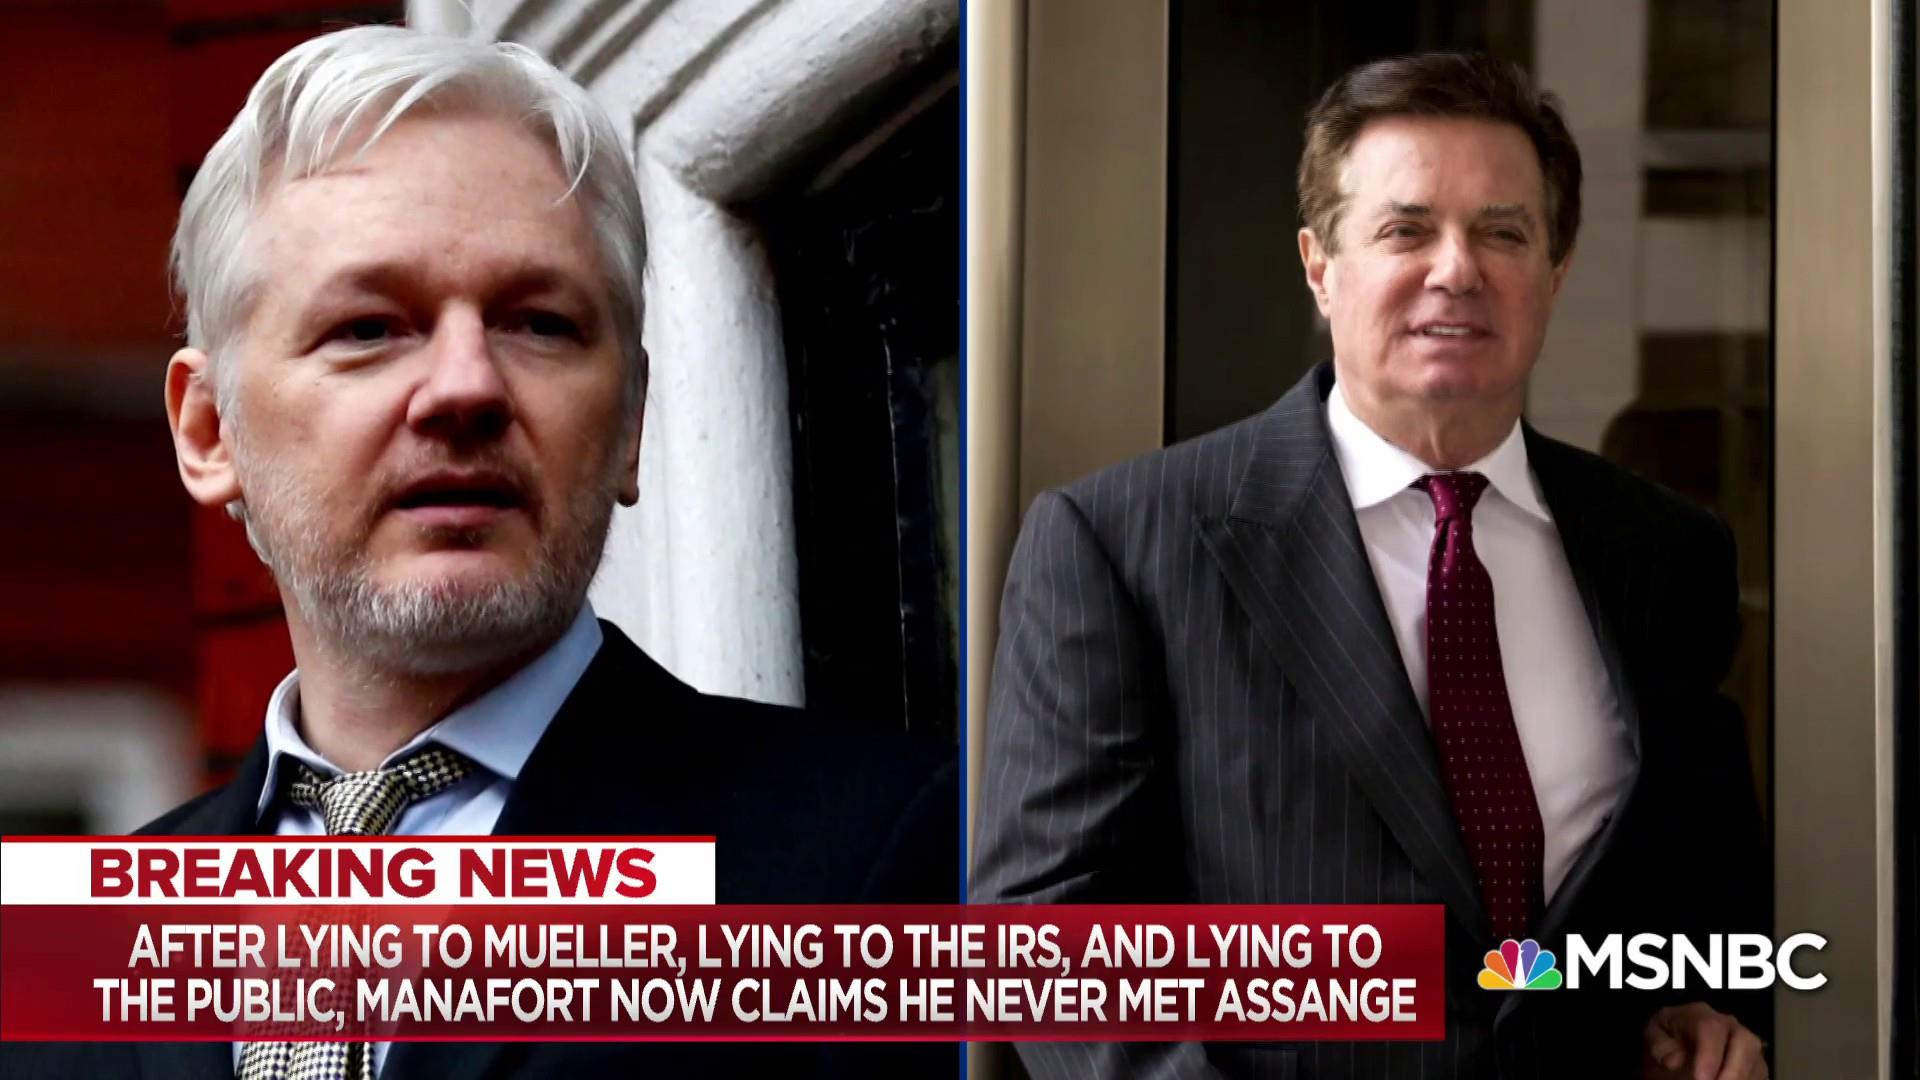 Collusion bombshell: Report Manafort met with Assange in 2016